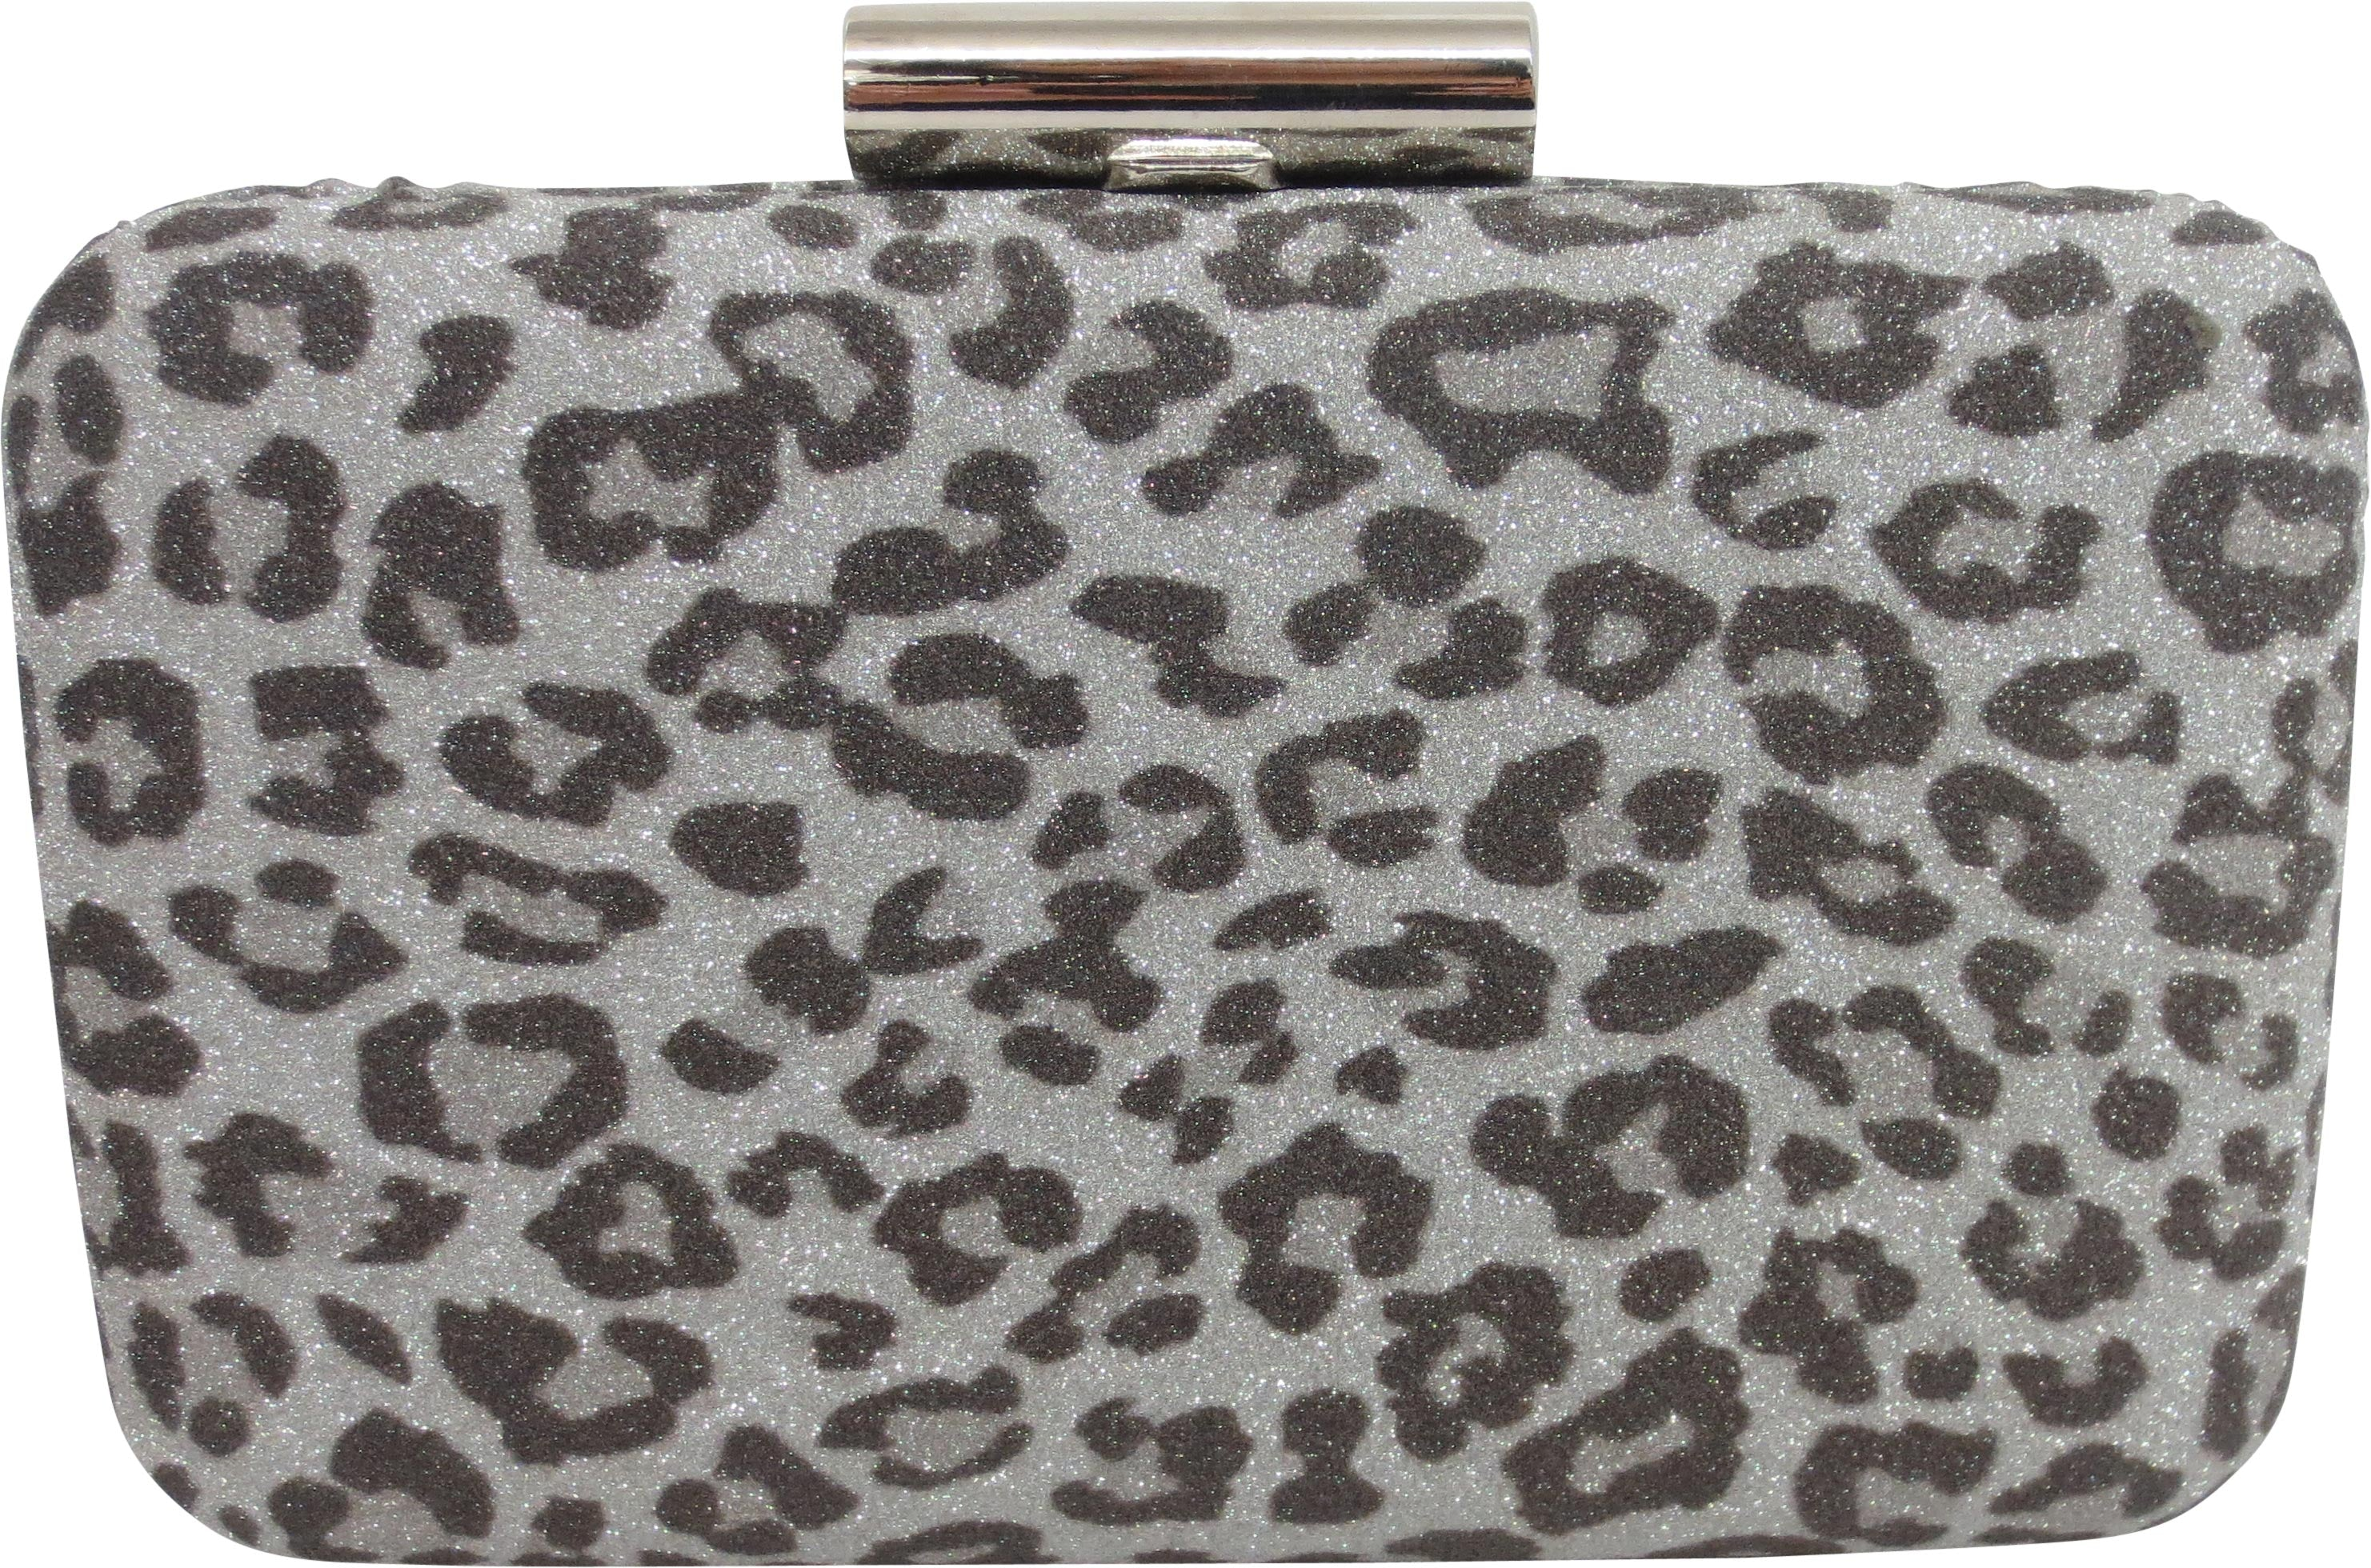 SRBE3392 - Leopard Glitter Clutch in Silver by Sondra Roberts. Fun evening bag in leopard glitter print clutch is perfect for a little black dress or night out. Imported.